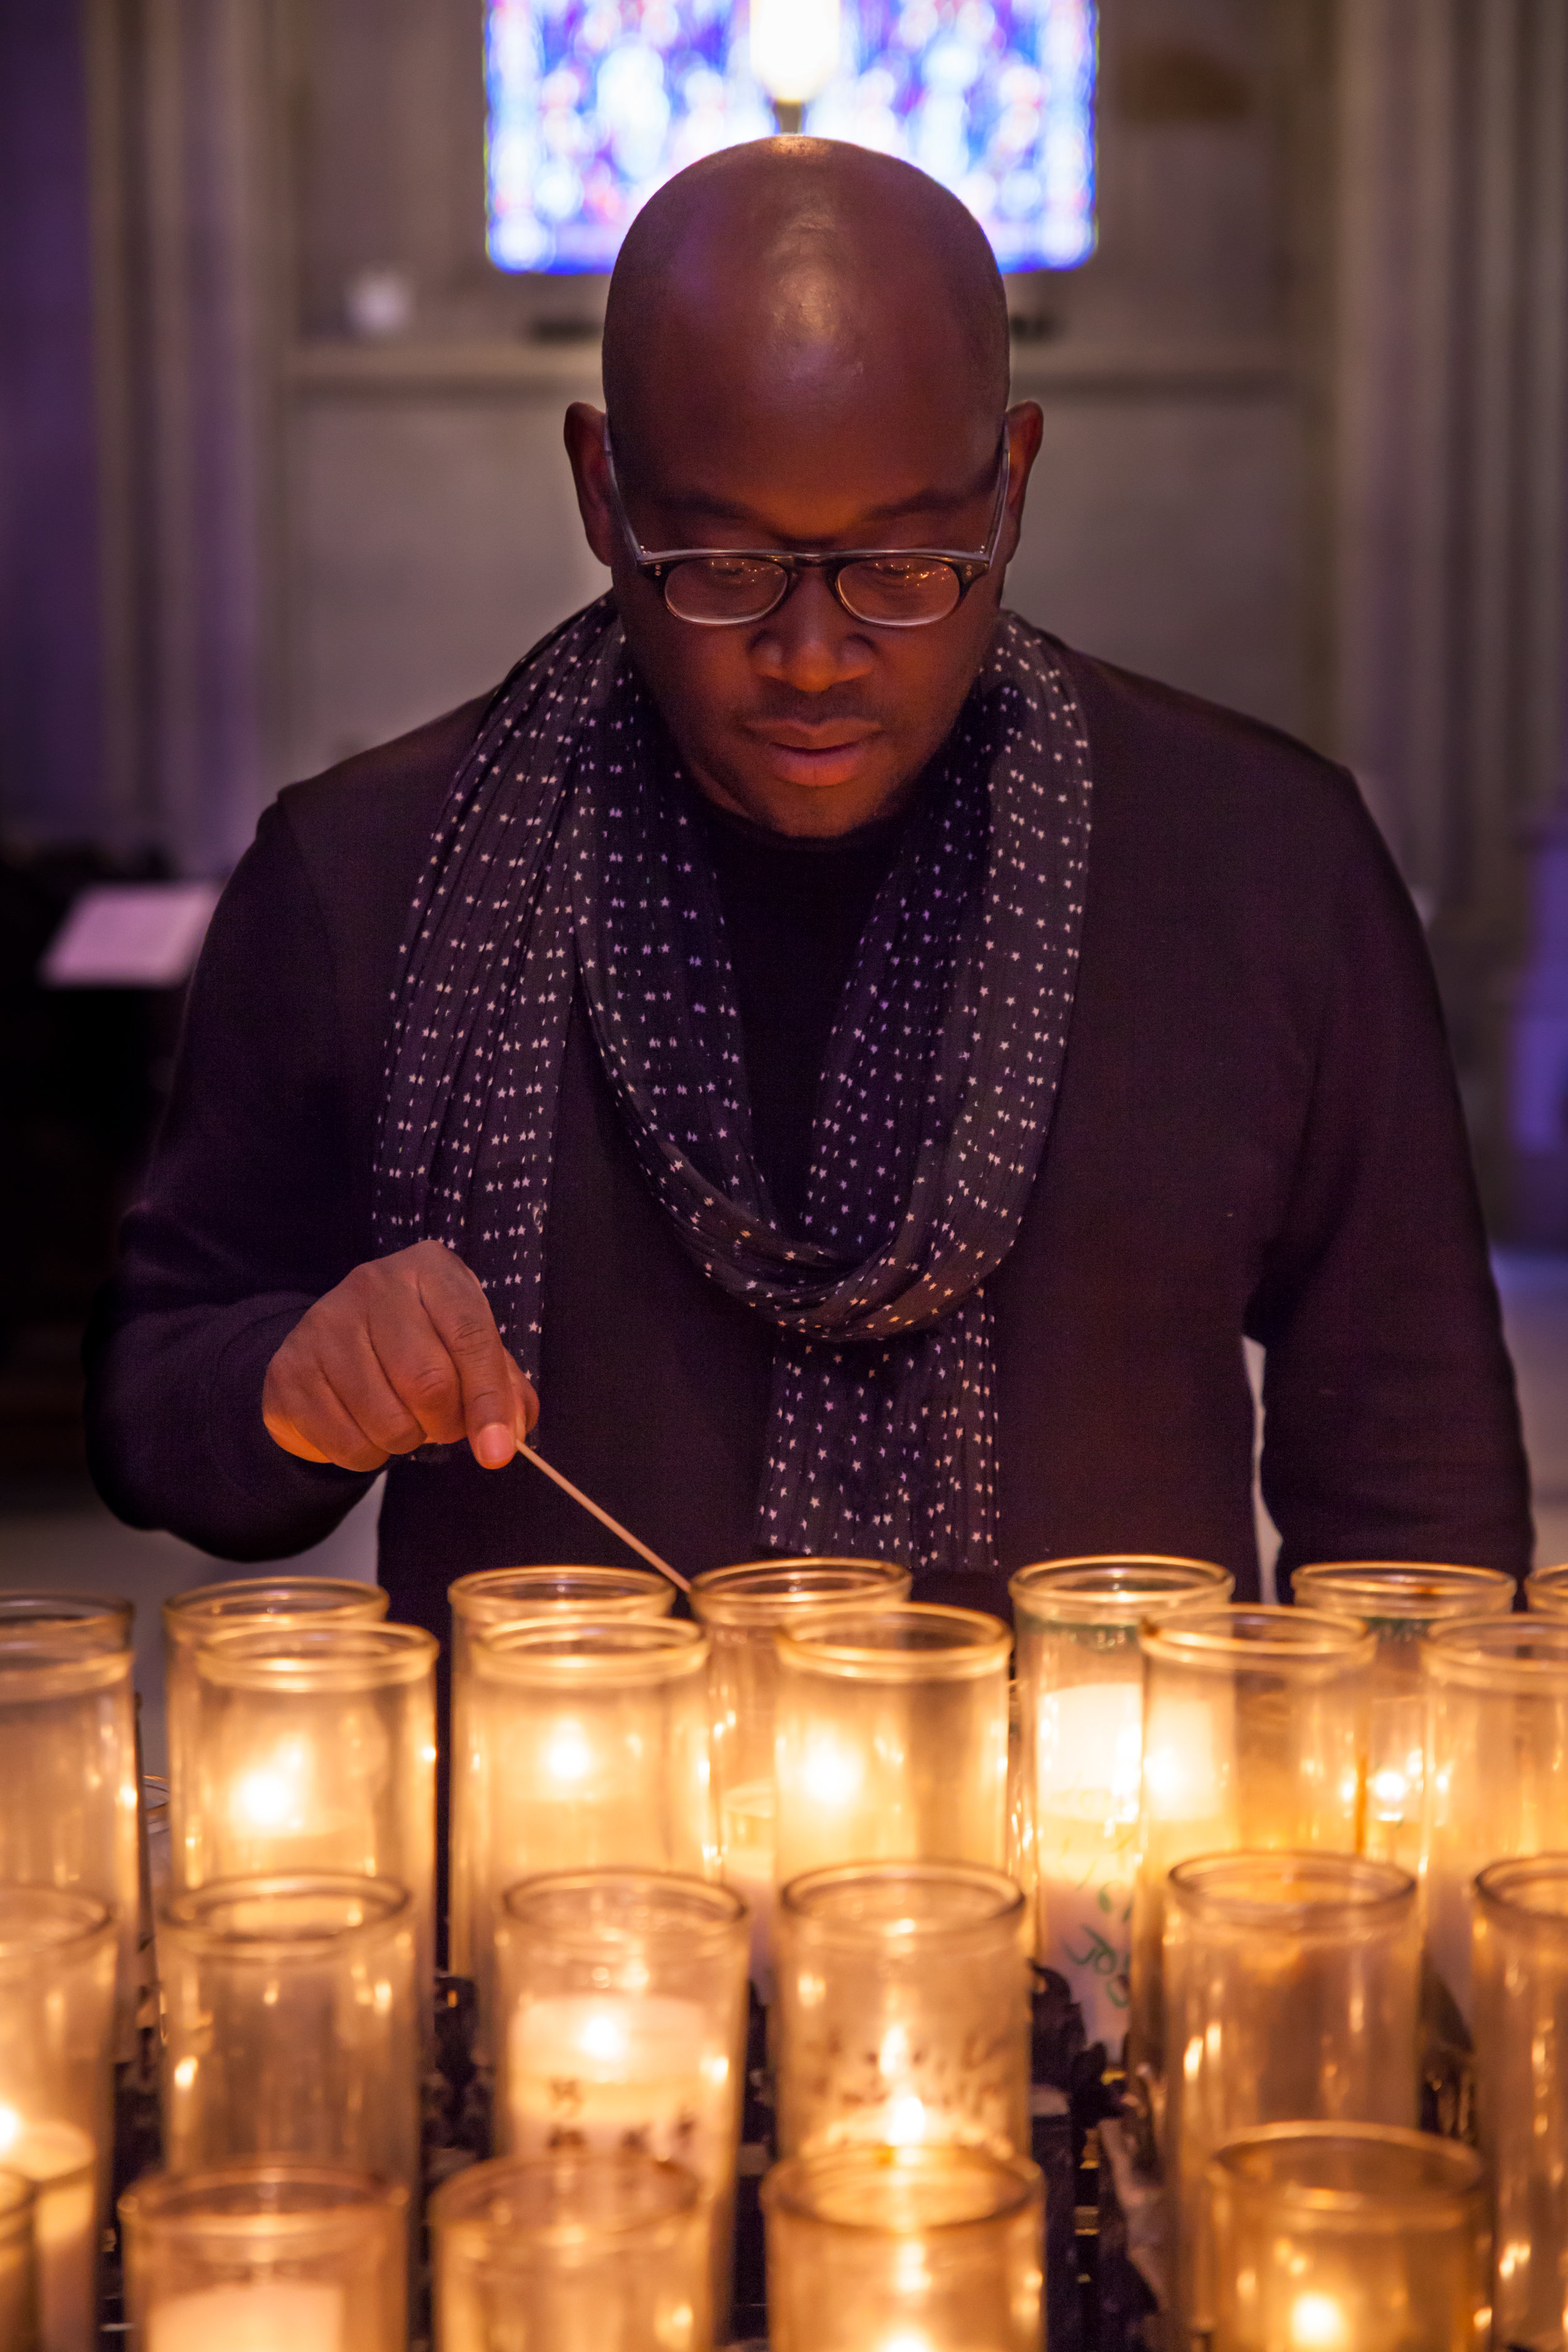 Sedrick with candles at St. John the Divine